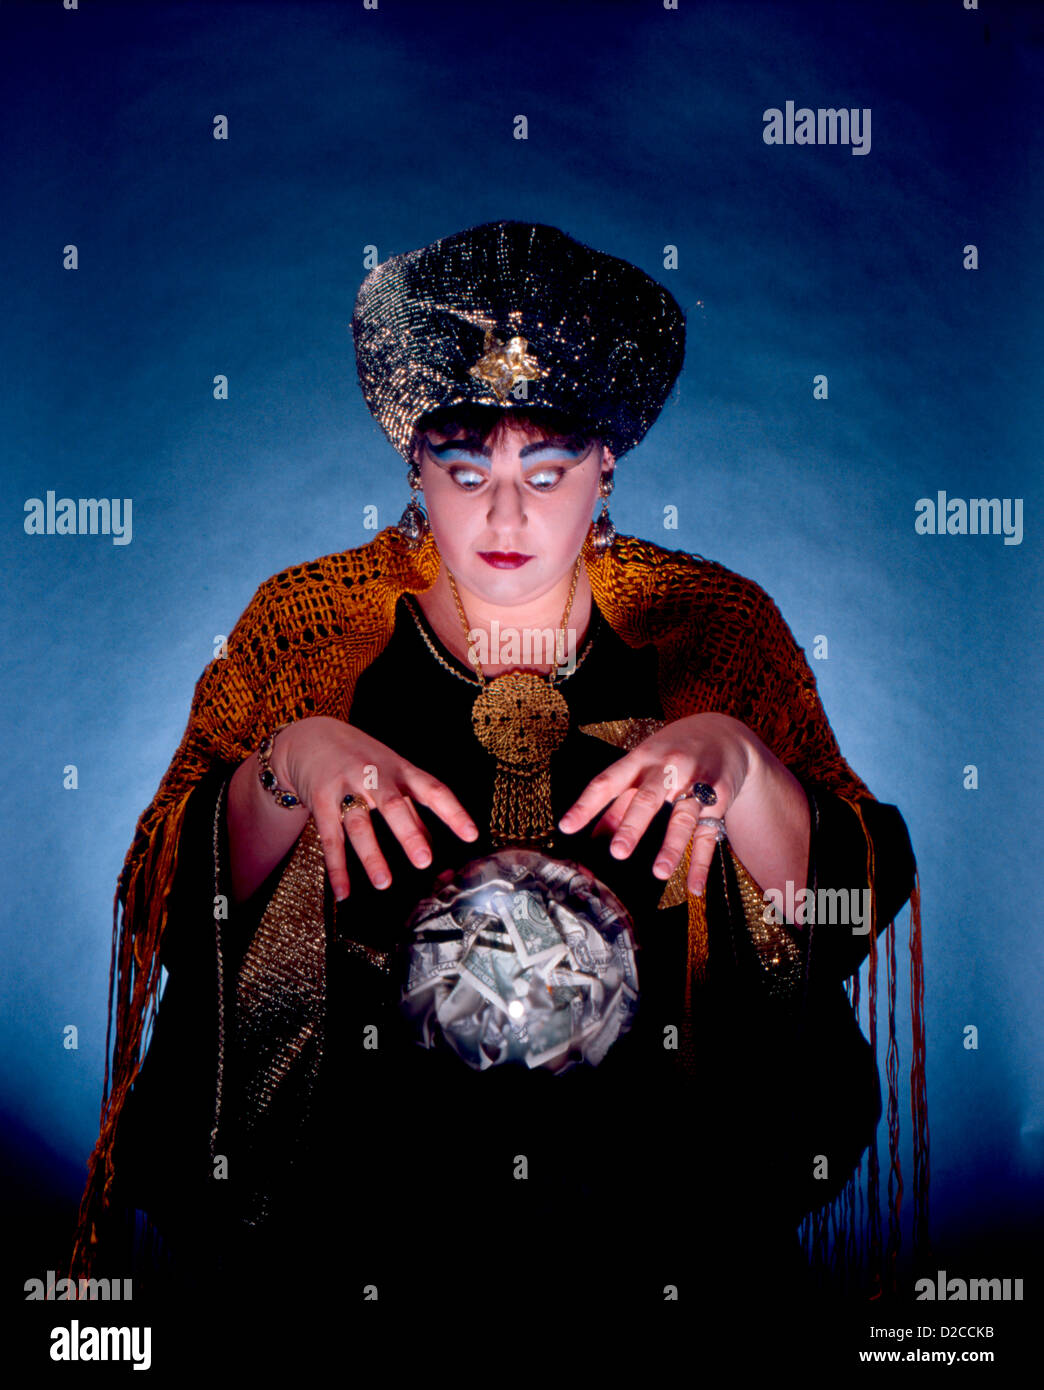 Fortune Teller Looking Into Crystal Ball, Filled With Money